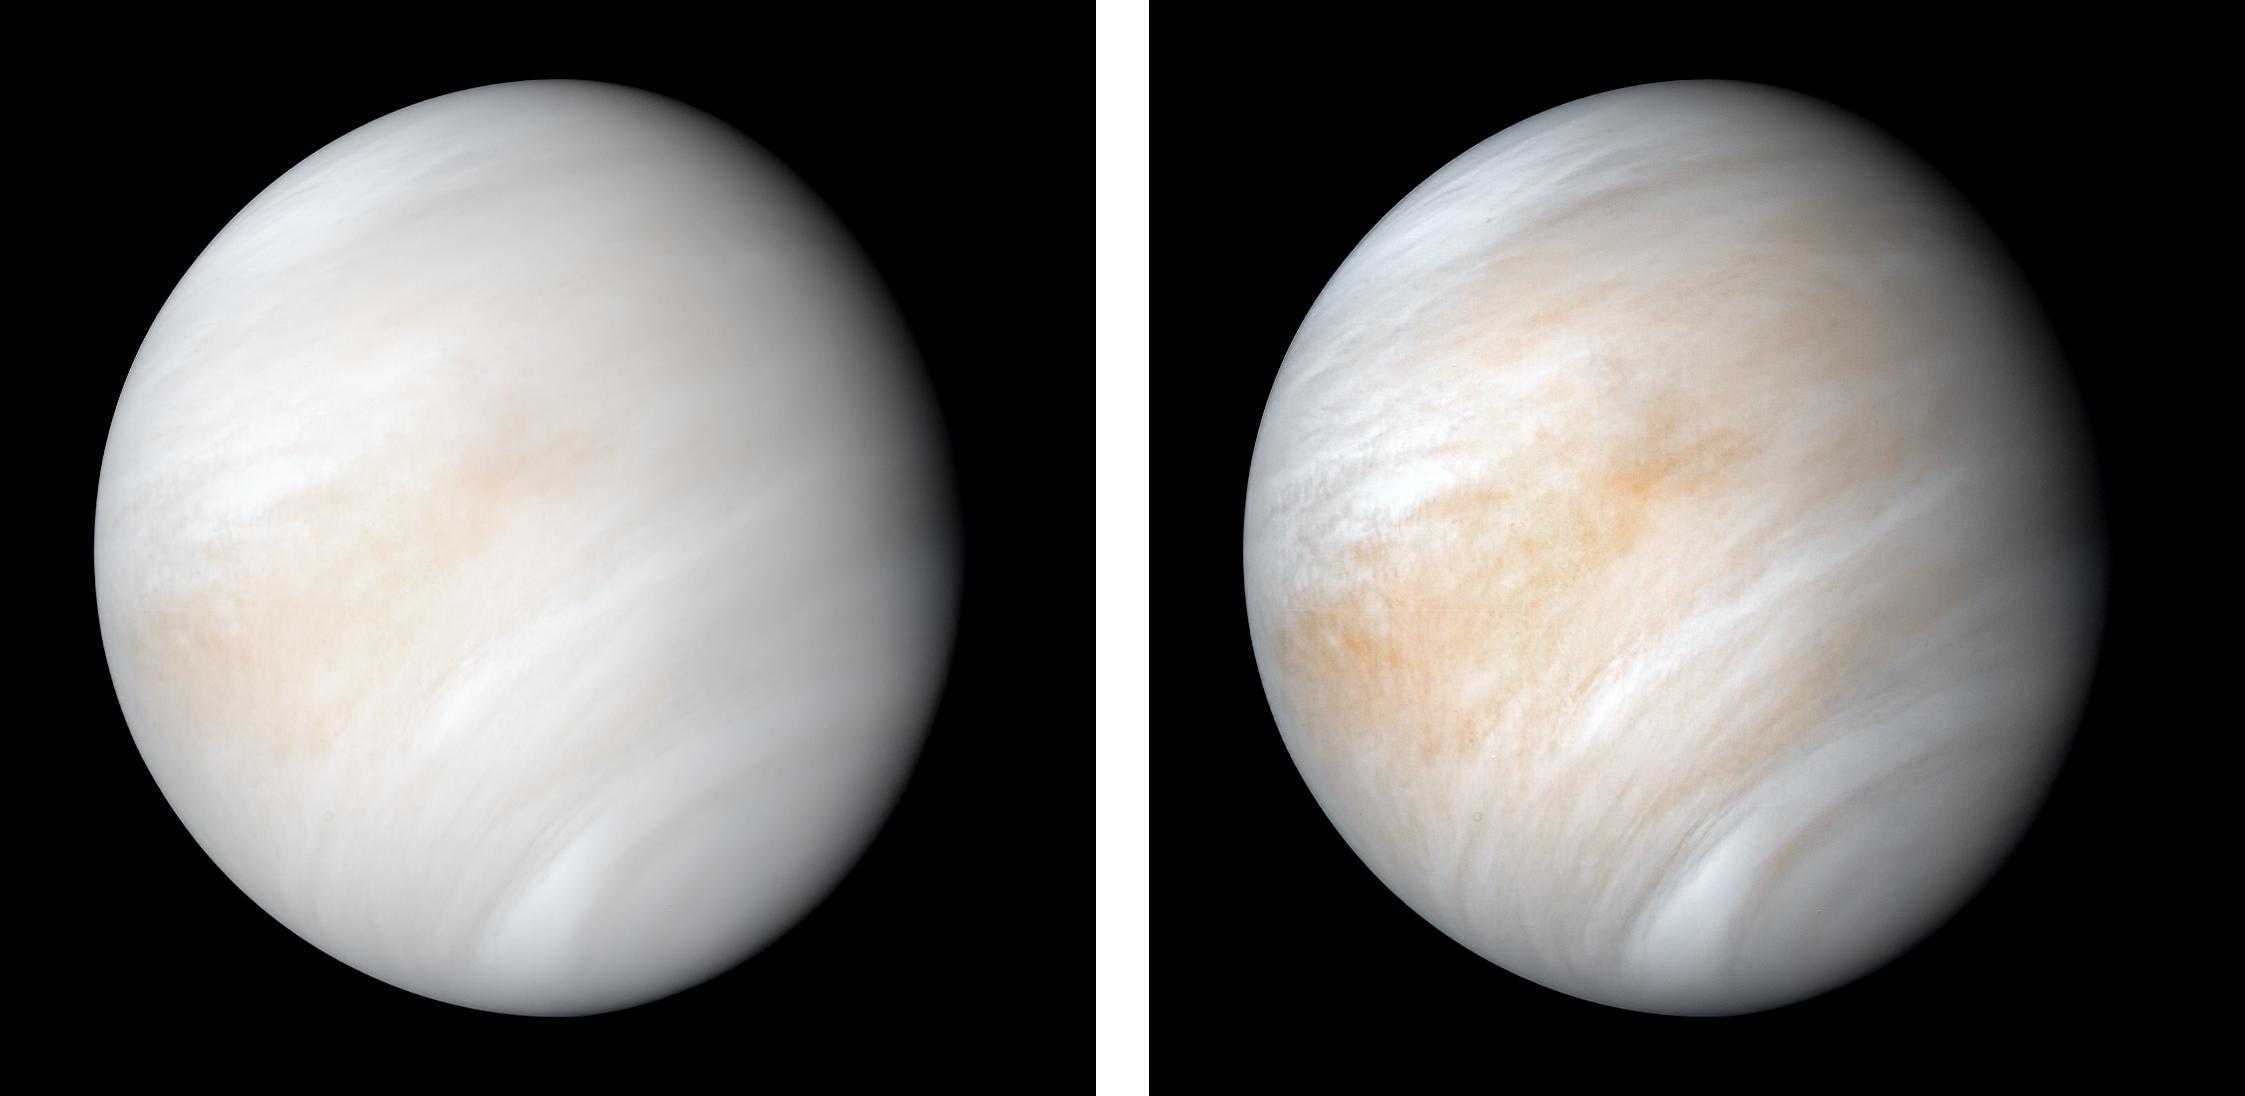 Two side-by-side images of the planet Venus, which is grey-blue and orange. The planet's colours change slightly between the images